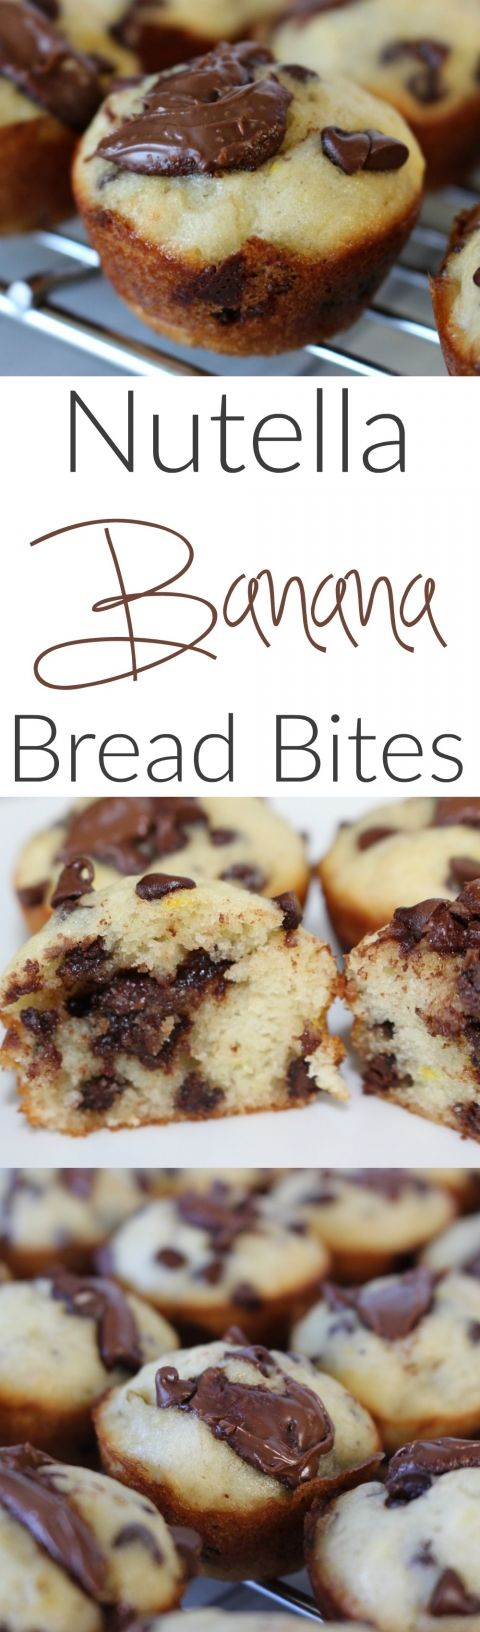 Nutella Banana Bread Bites - a quick and easy dessert that your guests will love